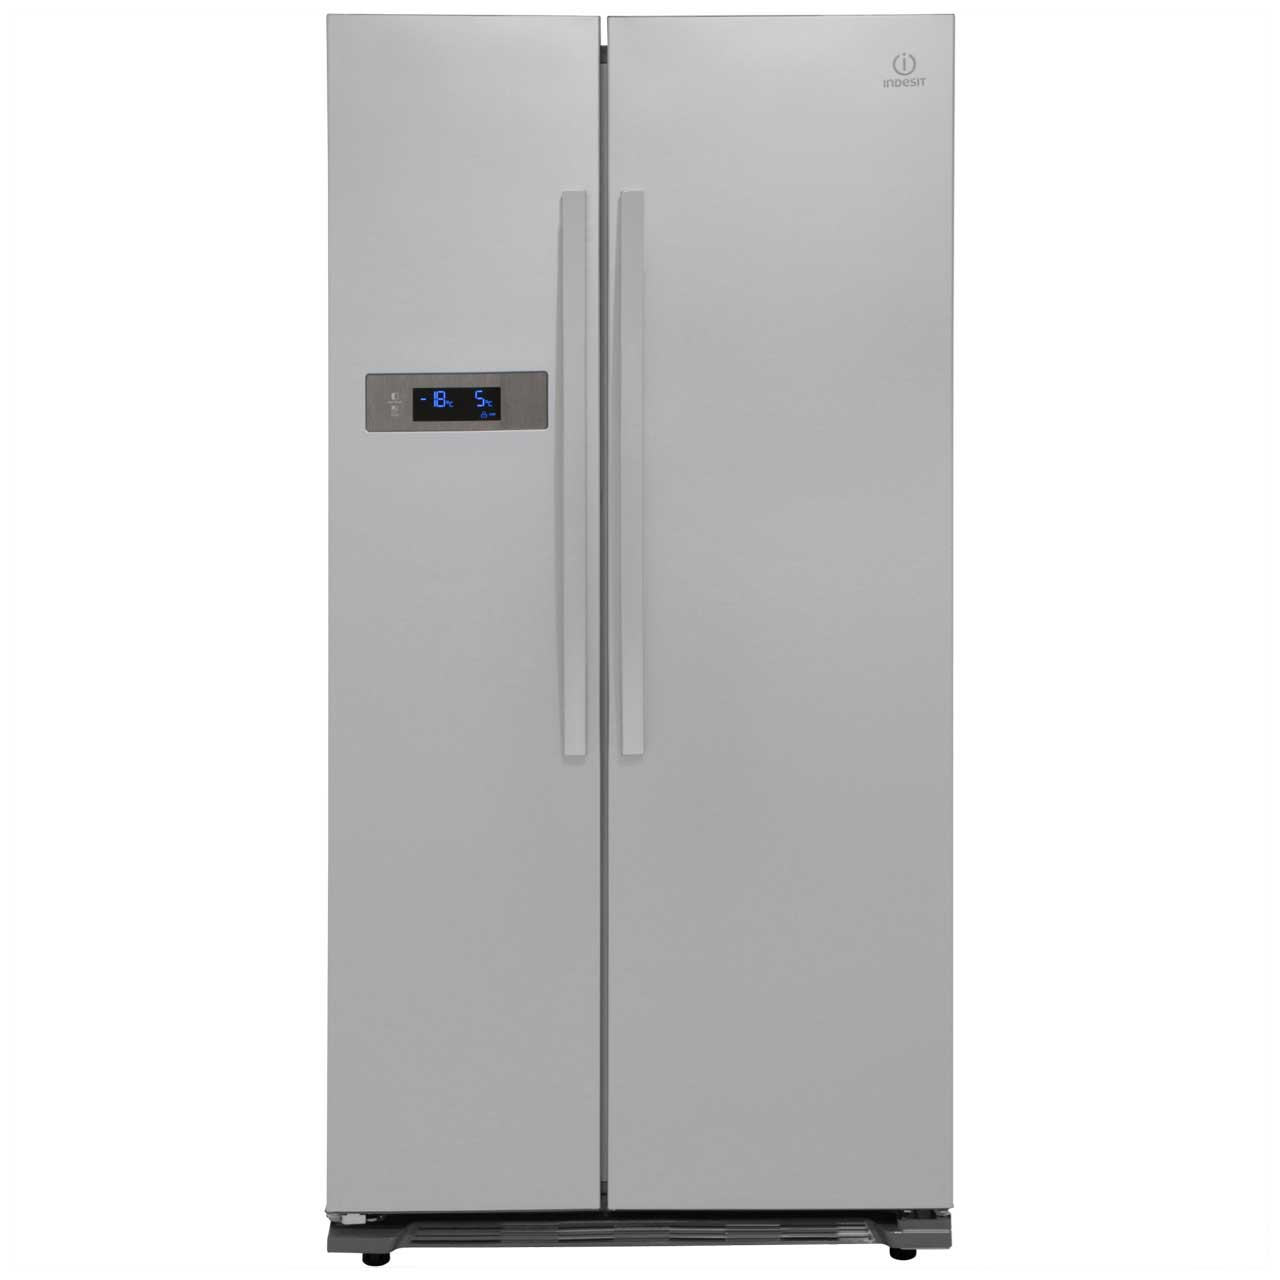 Indesit SBSAA530SD American Fridge Freezer - Silver